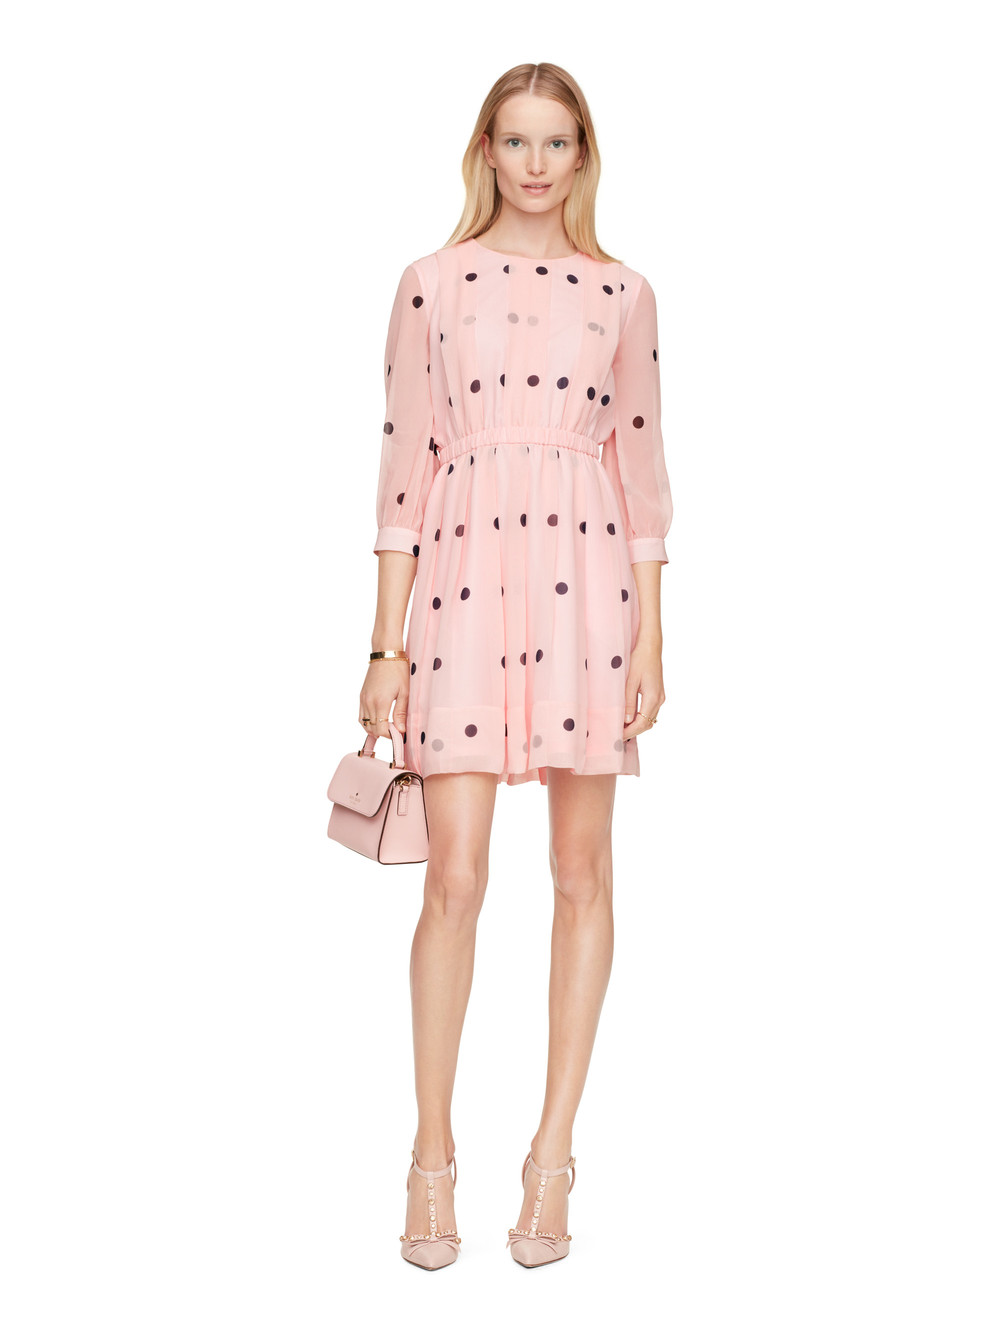 Kate Spade Tiny Spotlight Pleated Dress. Kate Spade. $378.